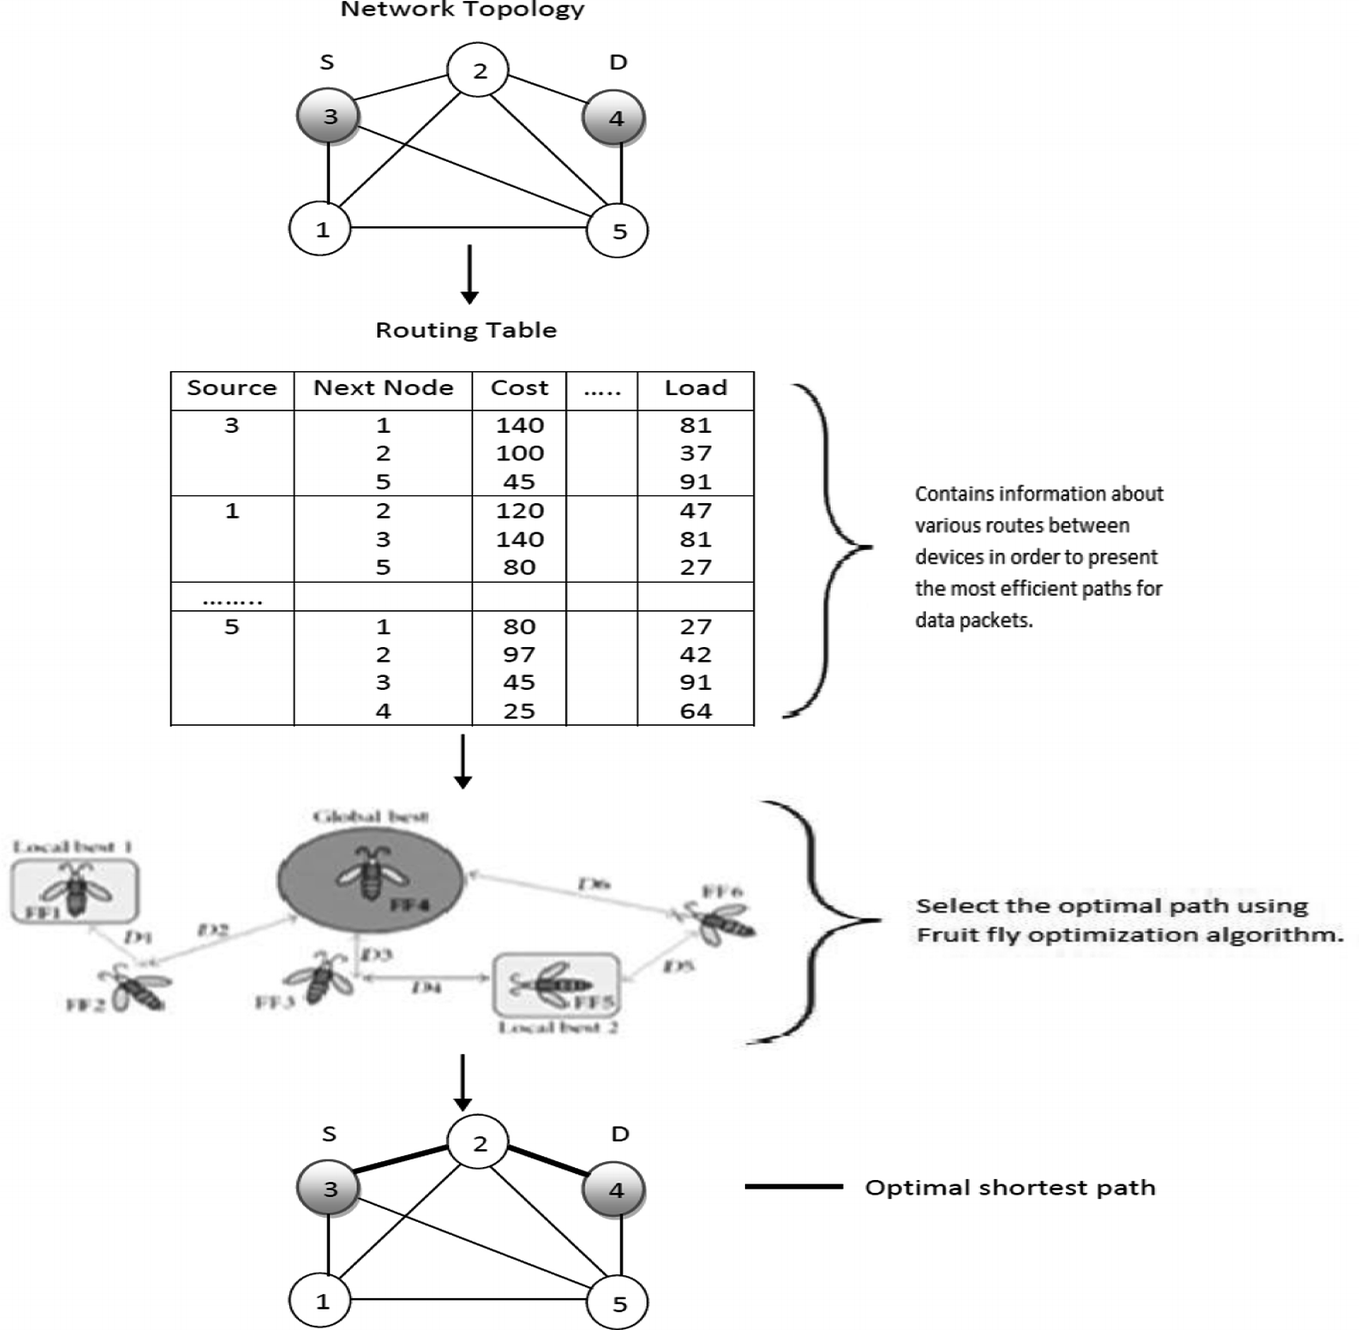 Optimal Shortest Path in Mobile Ad-Hoc Network Based on